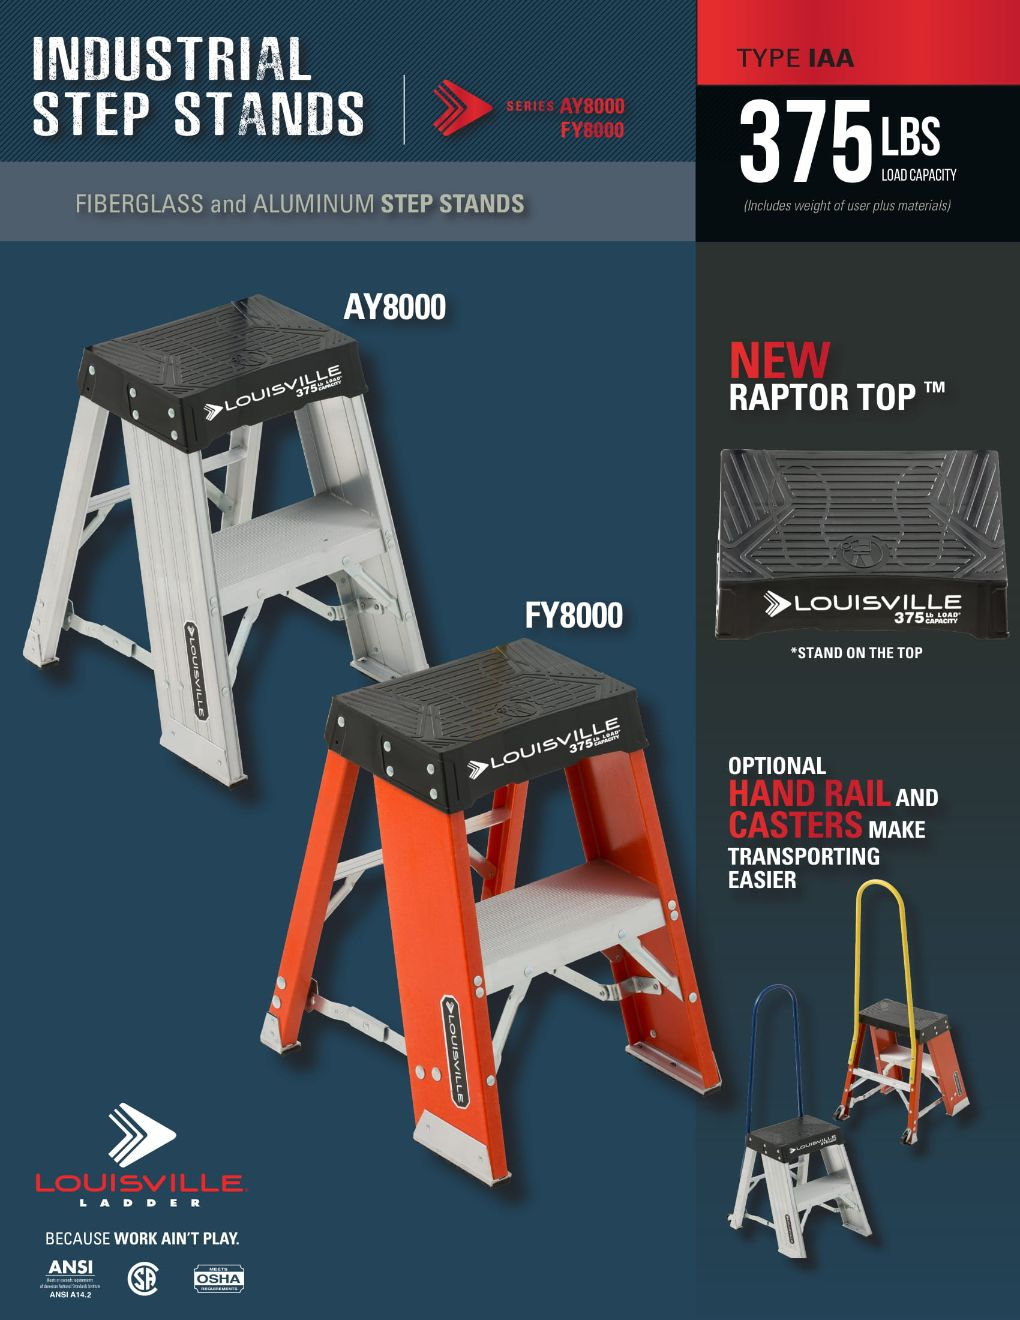 FY8000 & AY8000 Industrial Step Stands Flyer and Spec Sheets Marketing Material Image